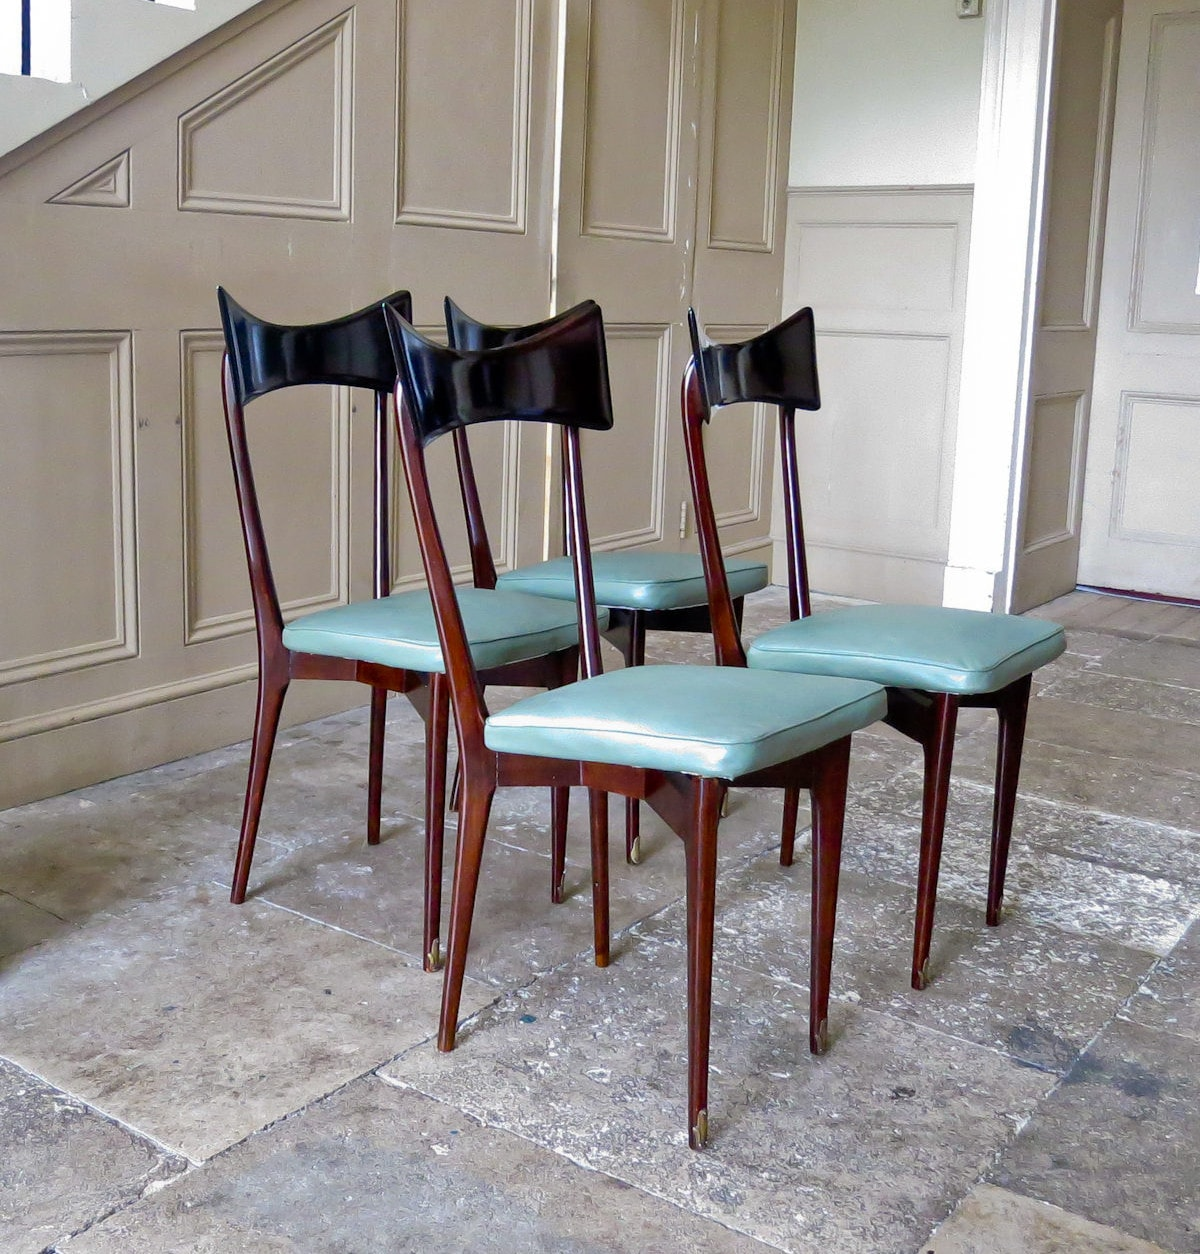 Ico Parisi Italian dining chairs 1950's